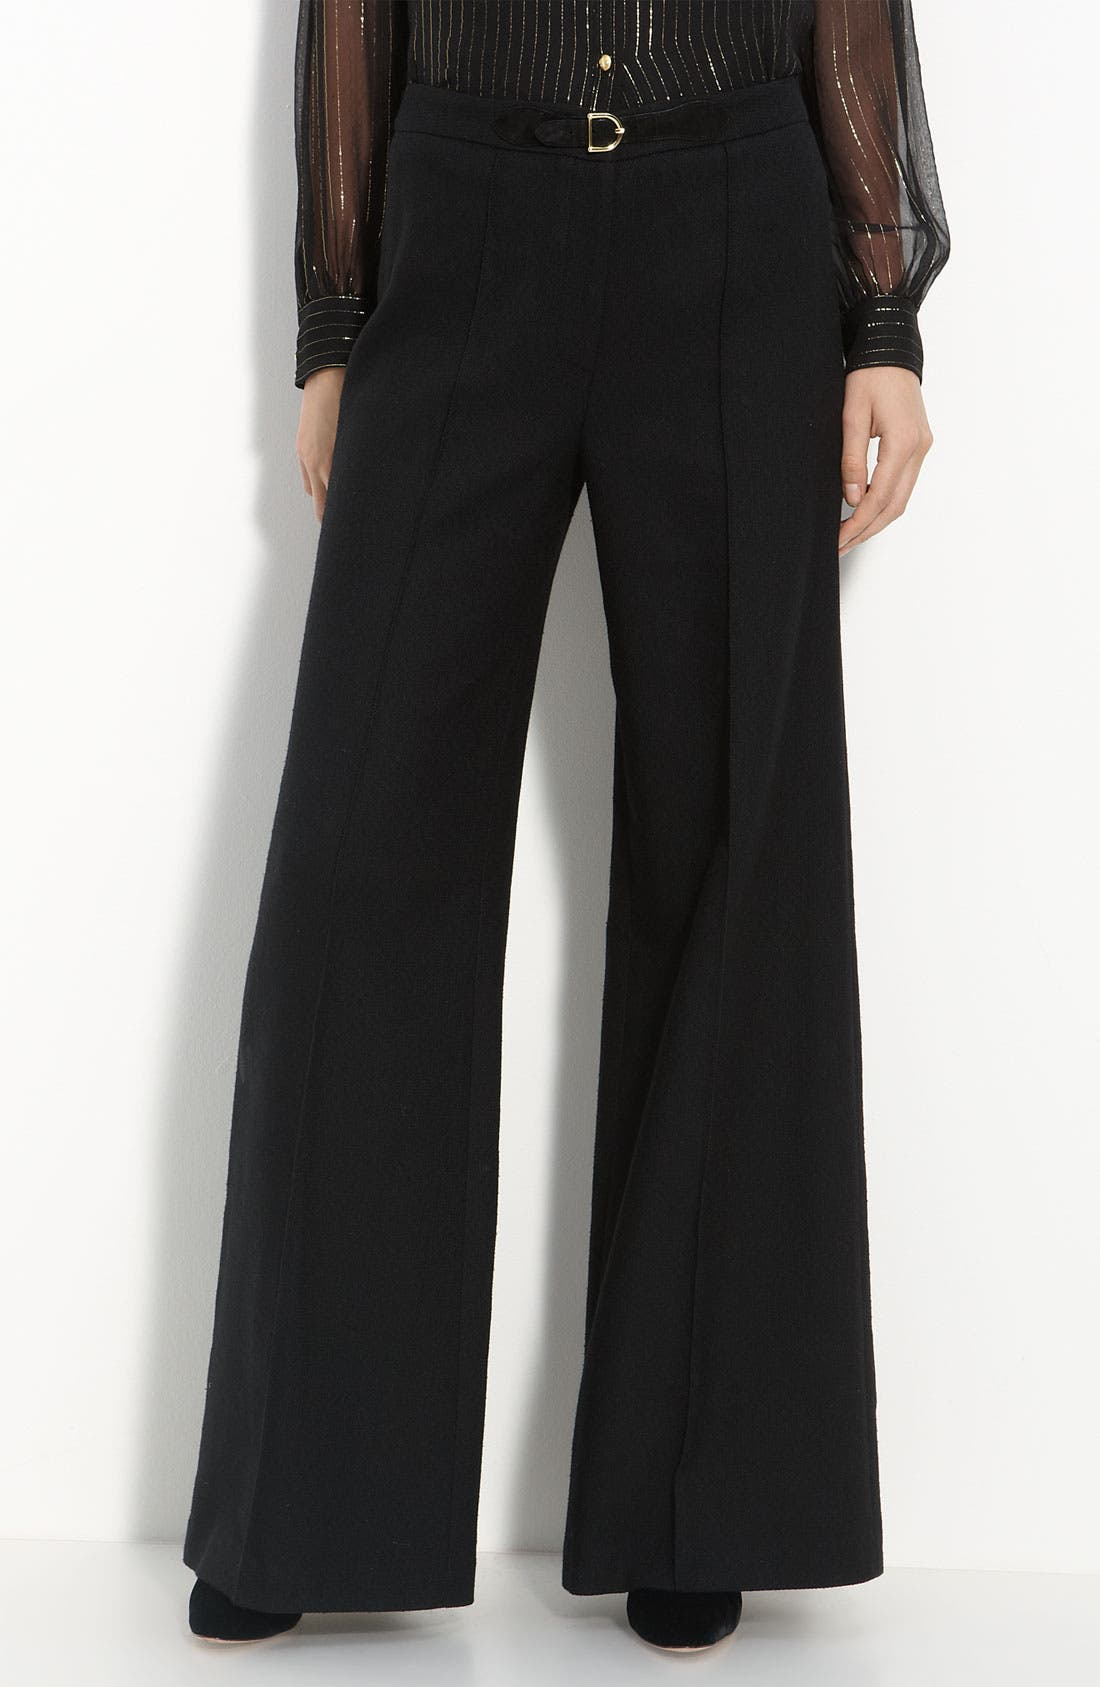 Main Image - Milly 'Trish' Suede Tab Trim Trousers